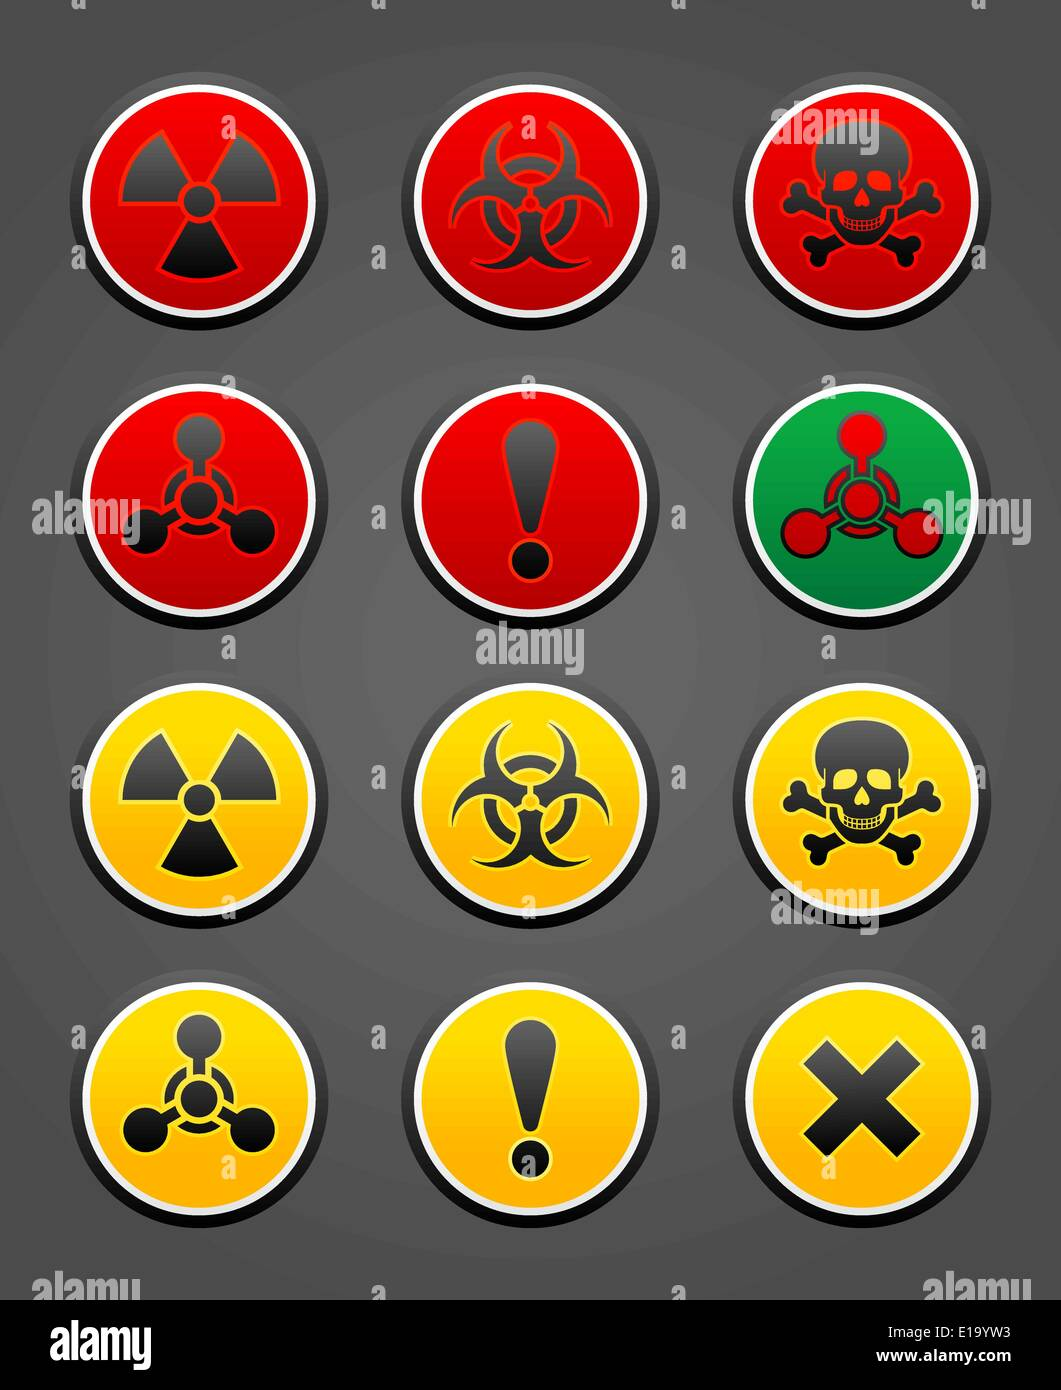 Biological Hazard Symbols Stock Photos Amp Biological Hazard Symbols Stock Images